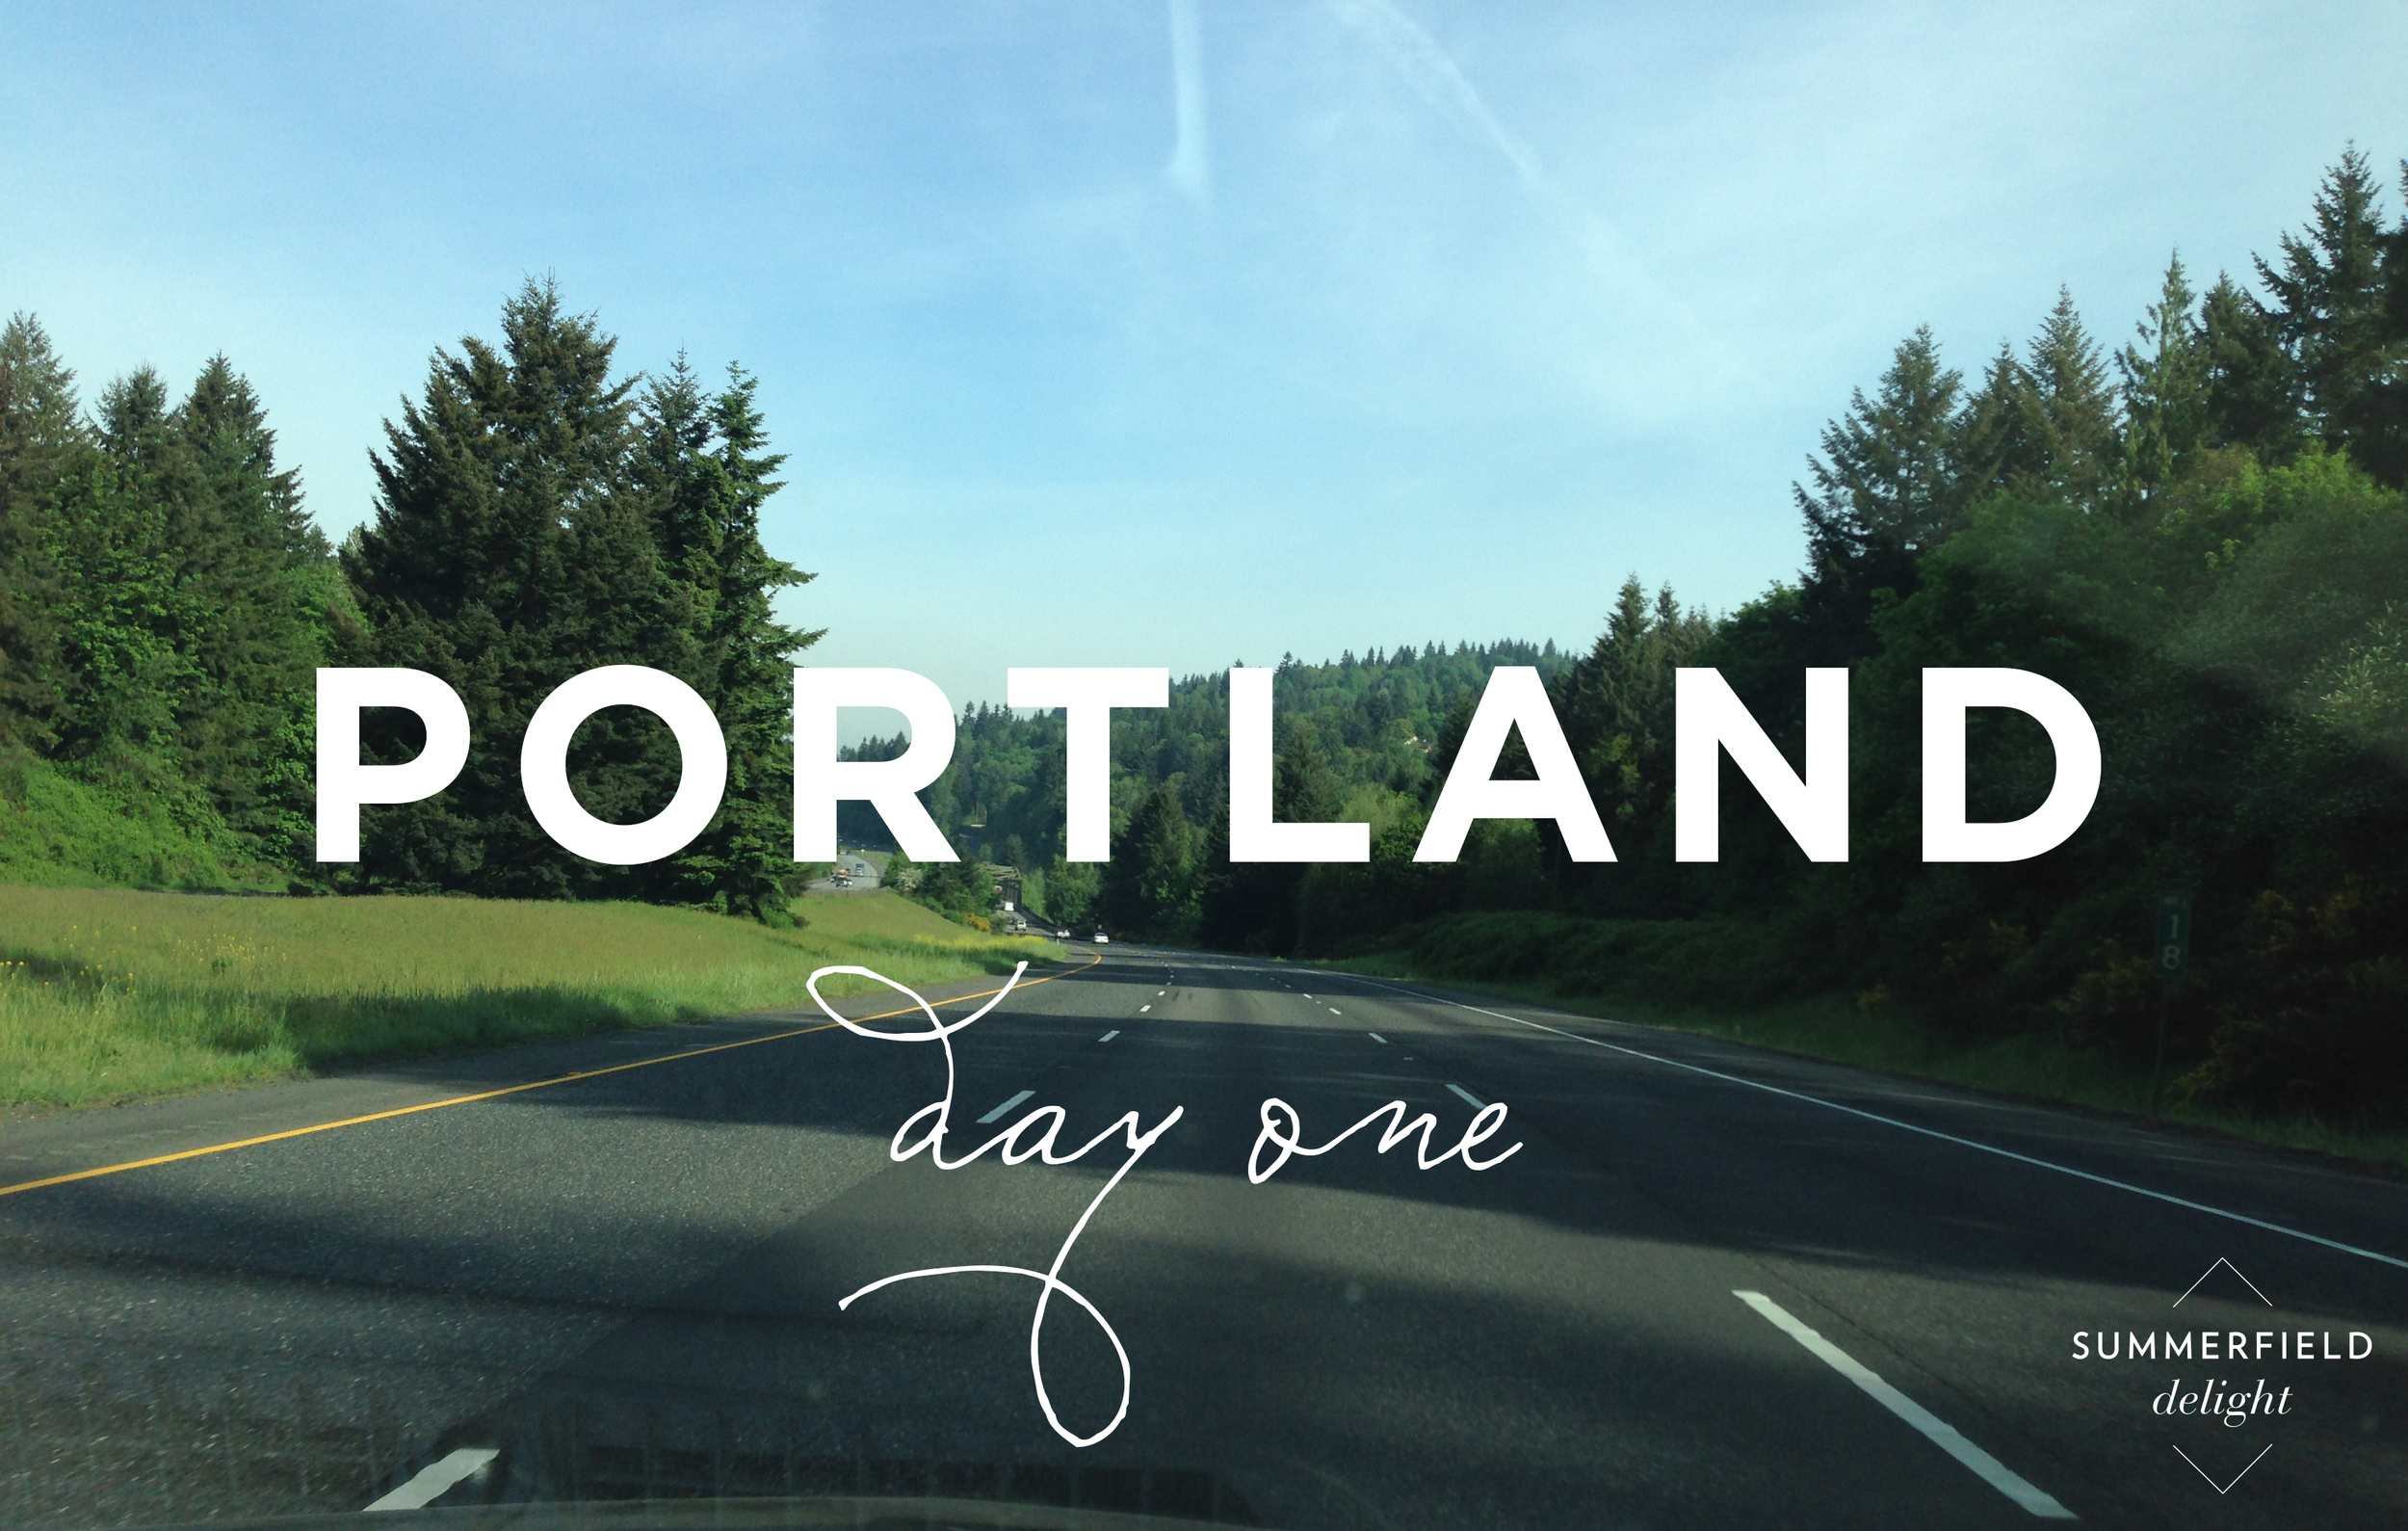 Summerfield Delight | Porland Day 1